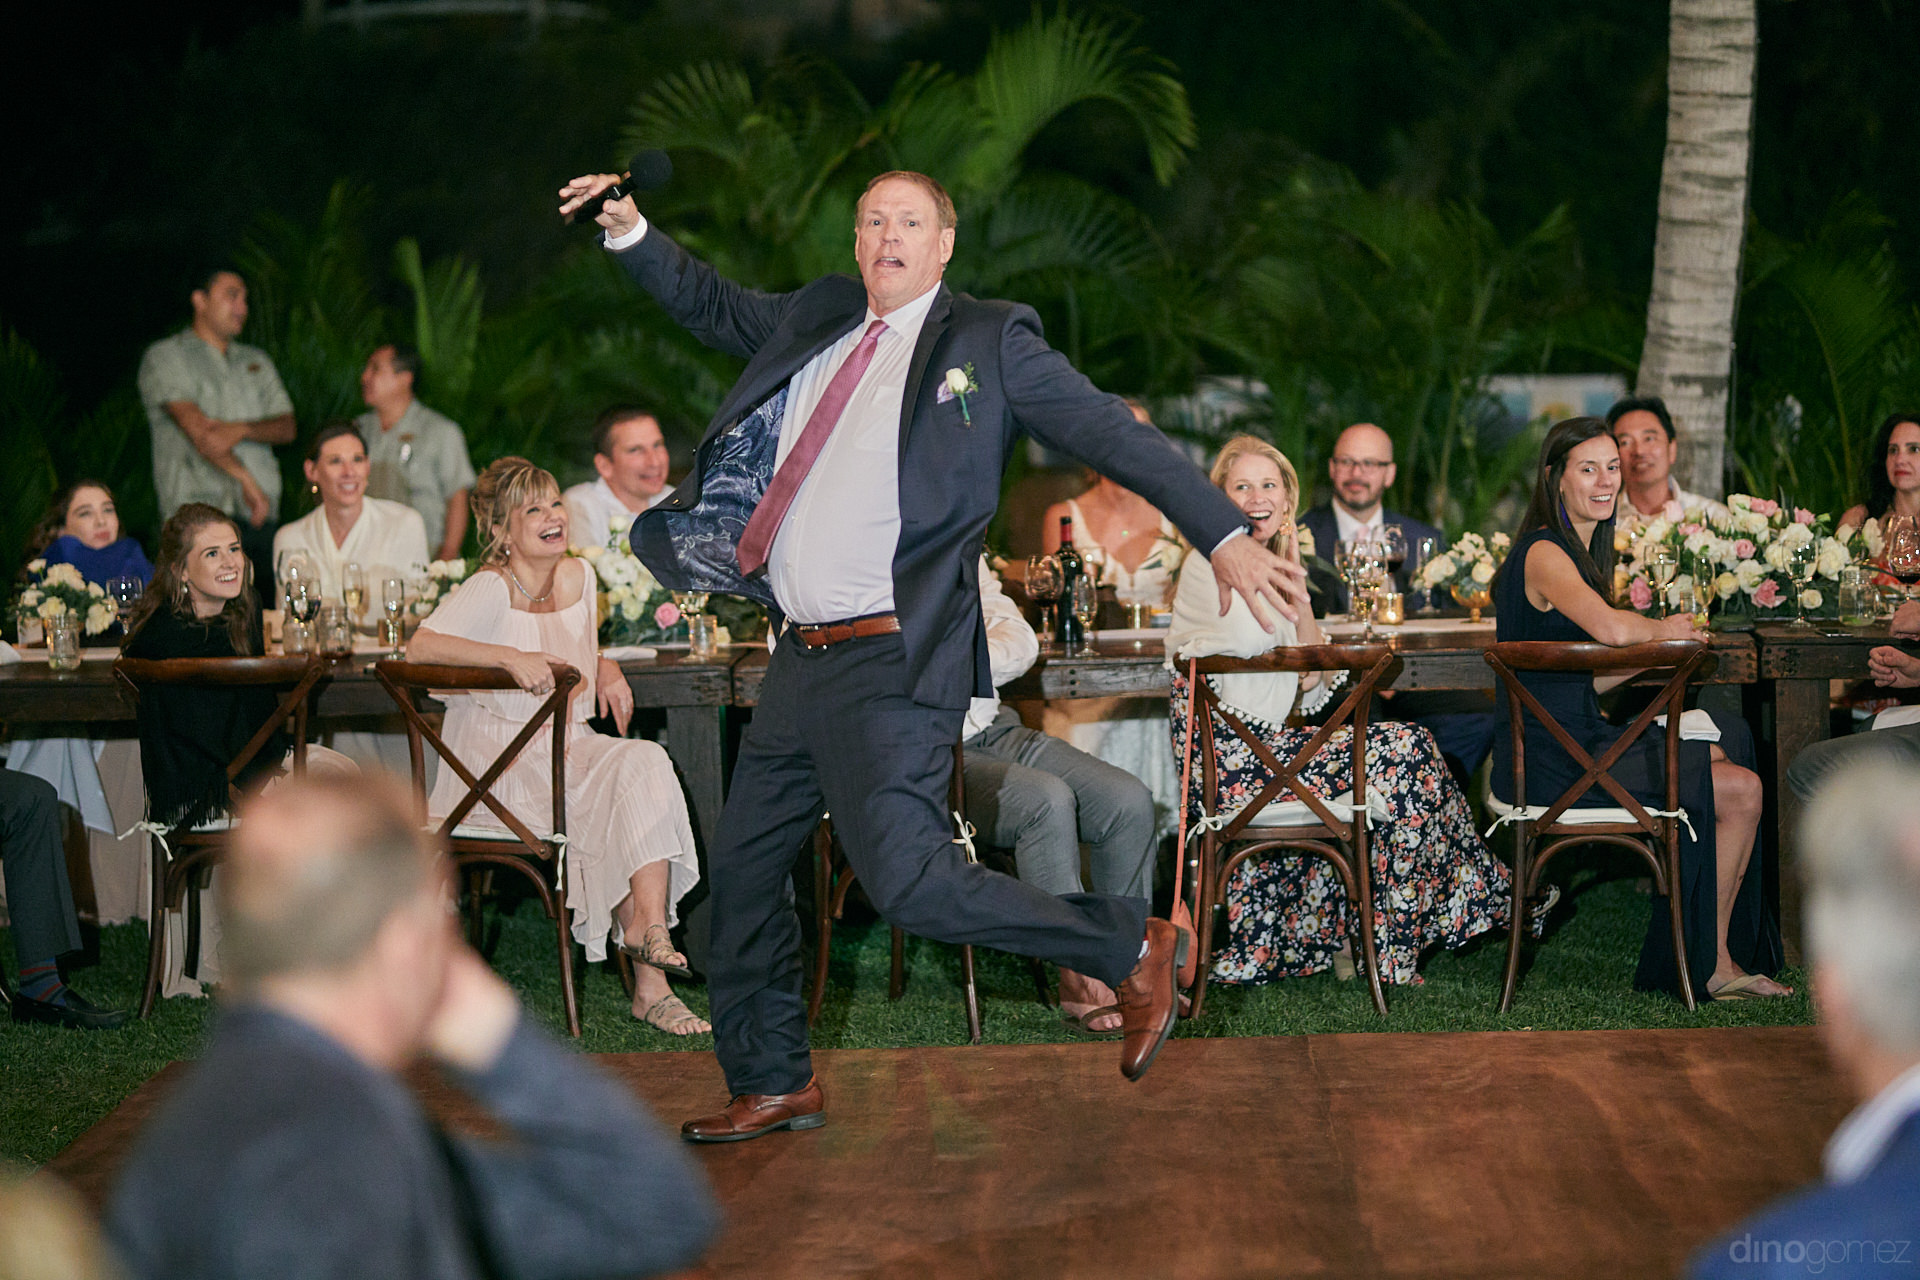 Los Cabos Wedding Packages All Inclusive That Will Make You Dance Like This